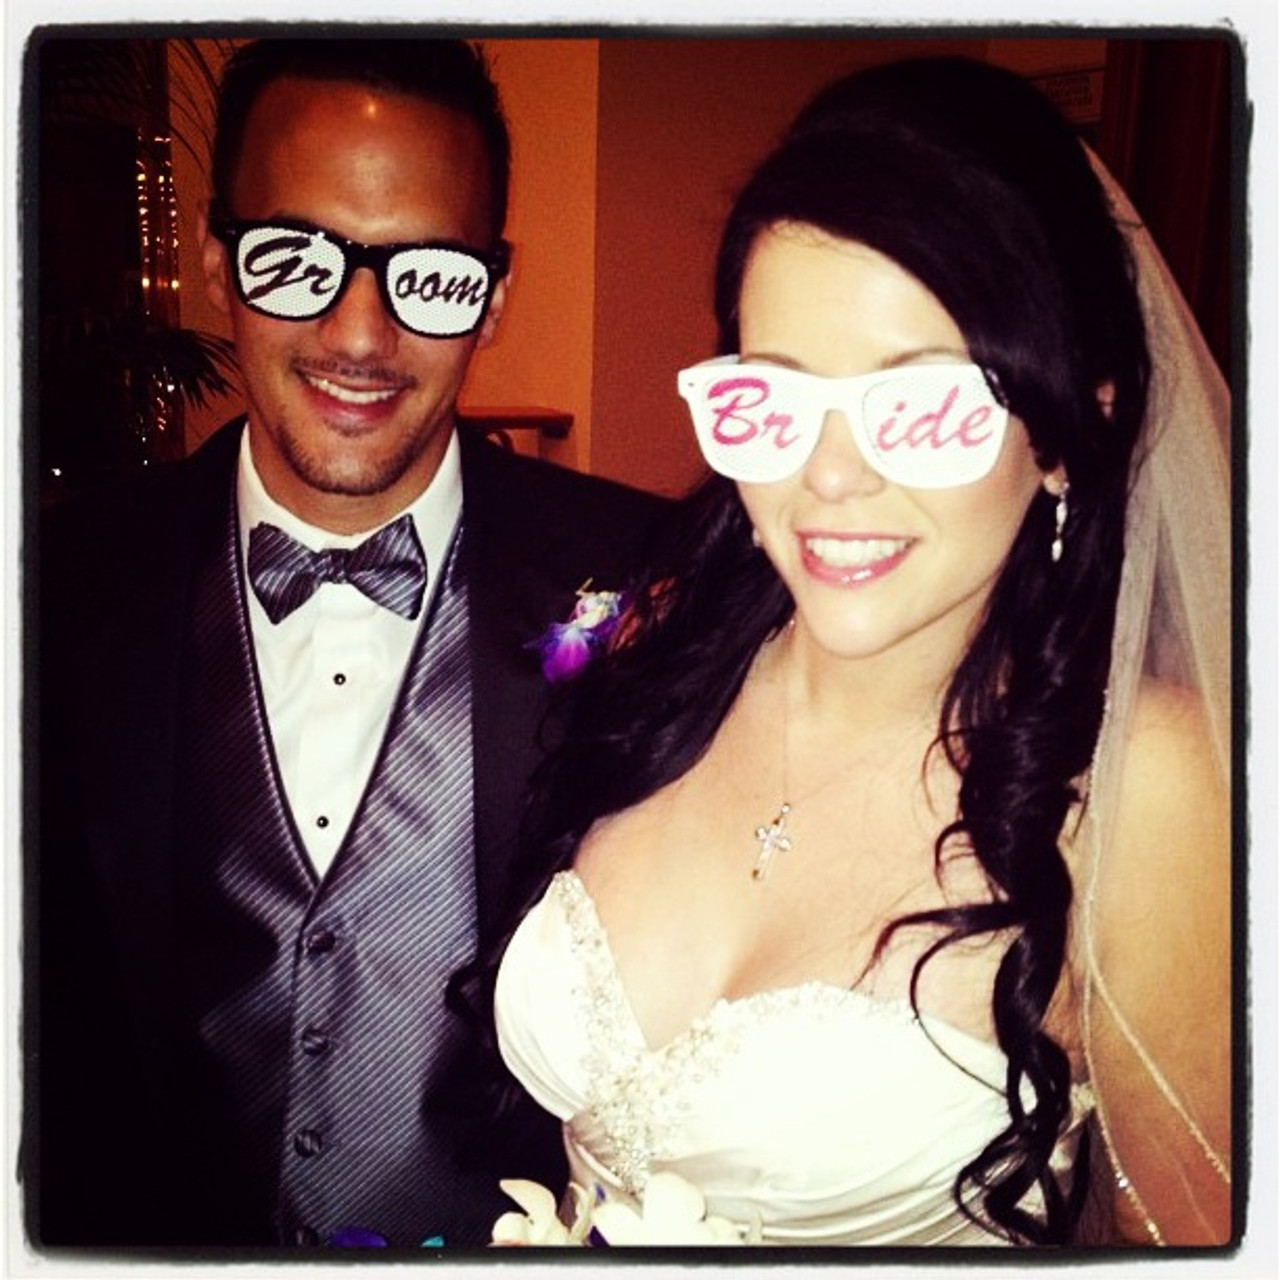 Printed sunglasses for bride and groom